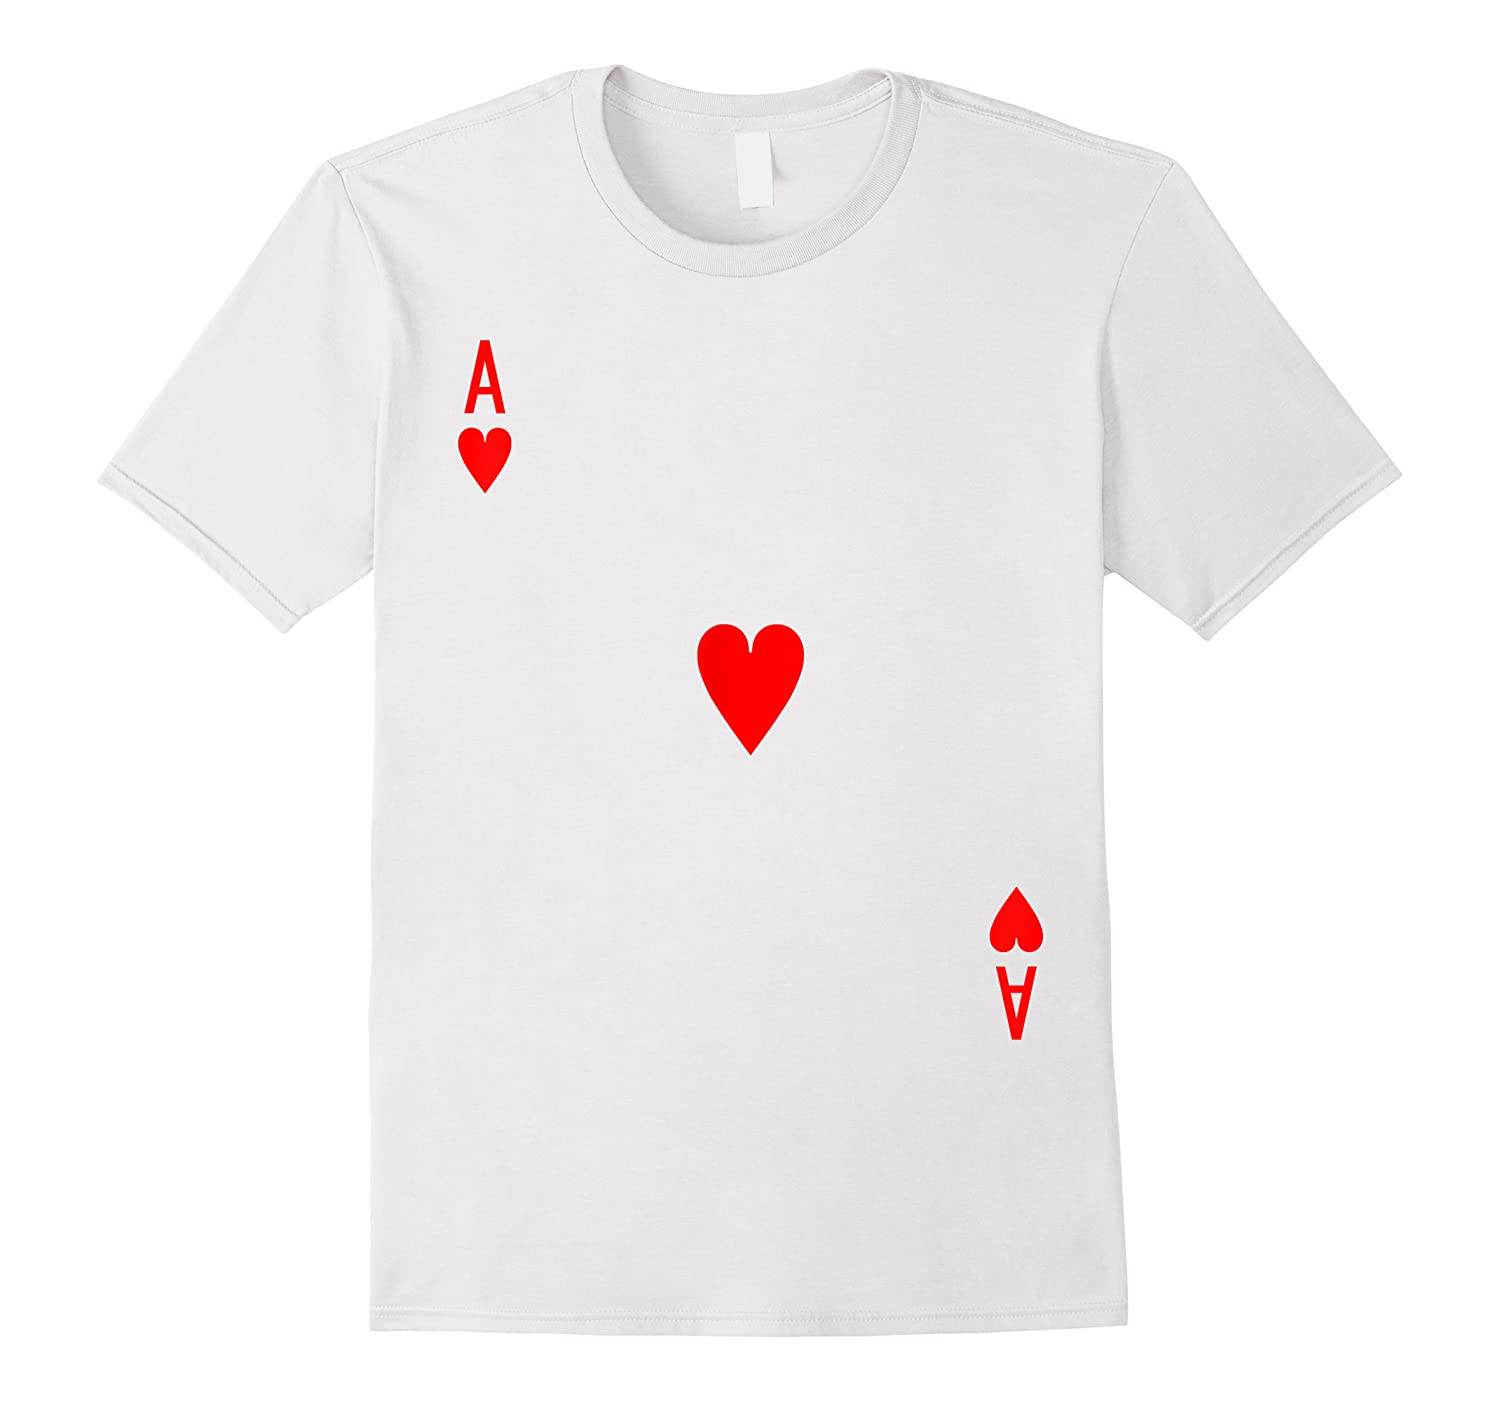 Ace Of Hearts Deck Of Cards Halloween Costume T-shirt